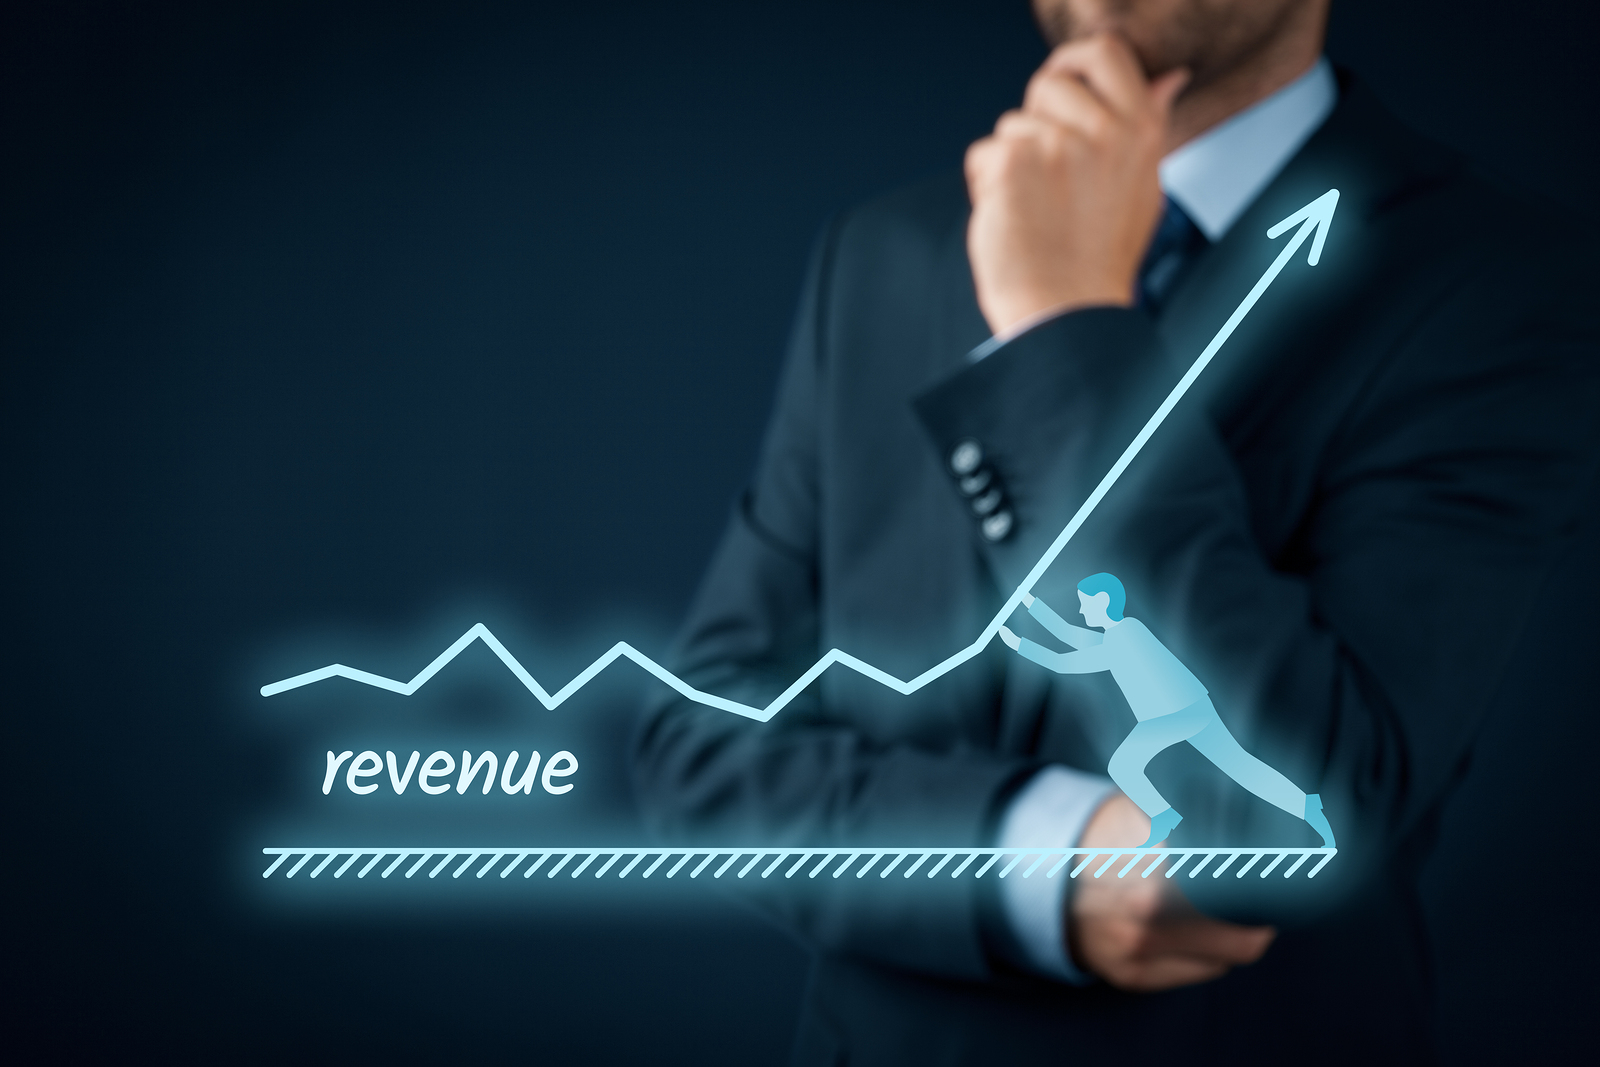 Increase Revenue in Your Business